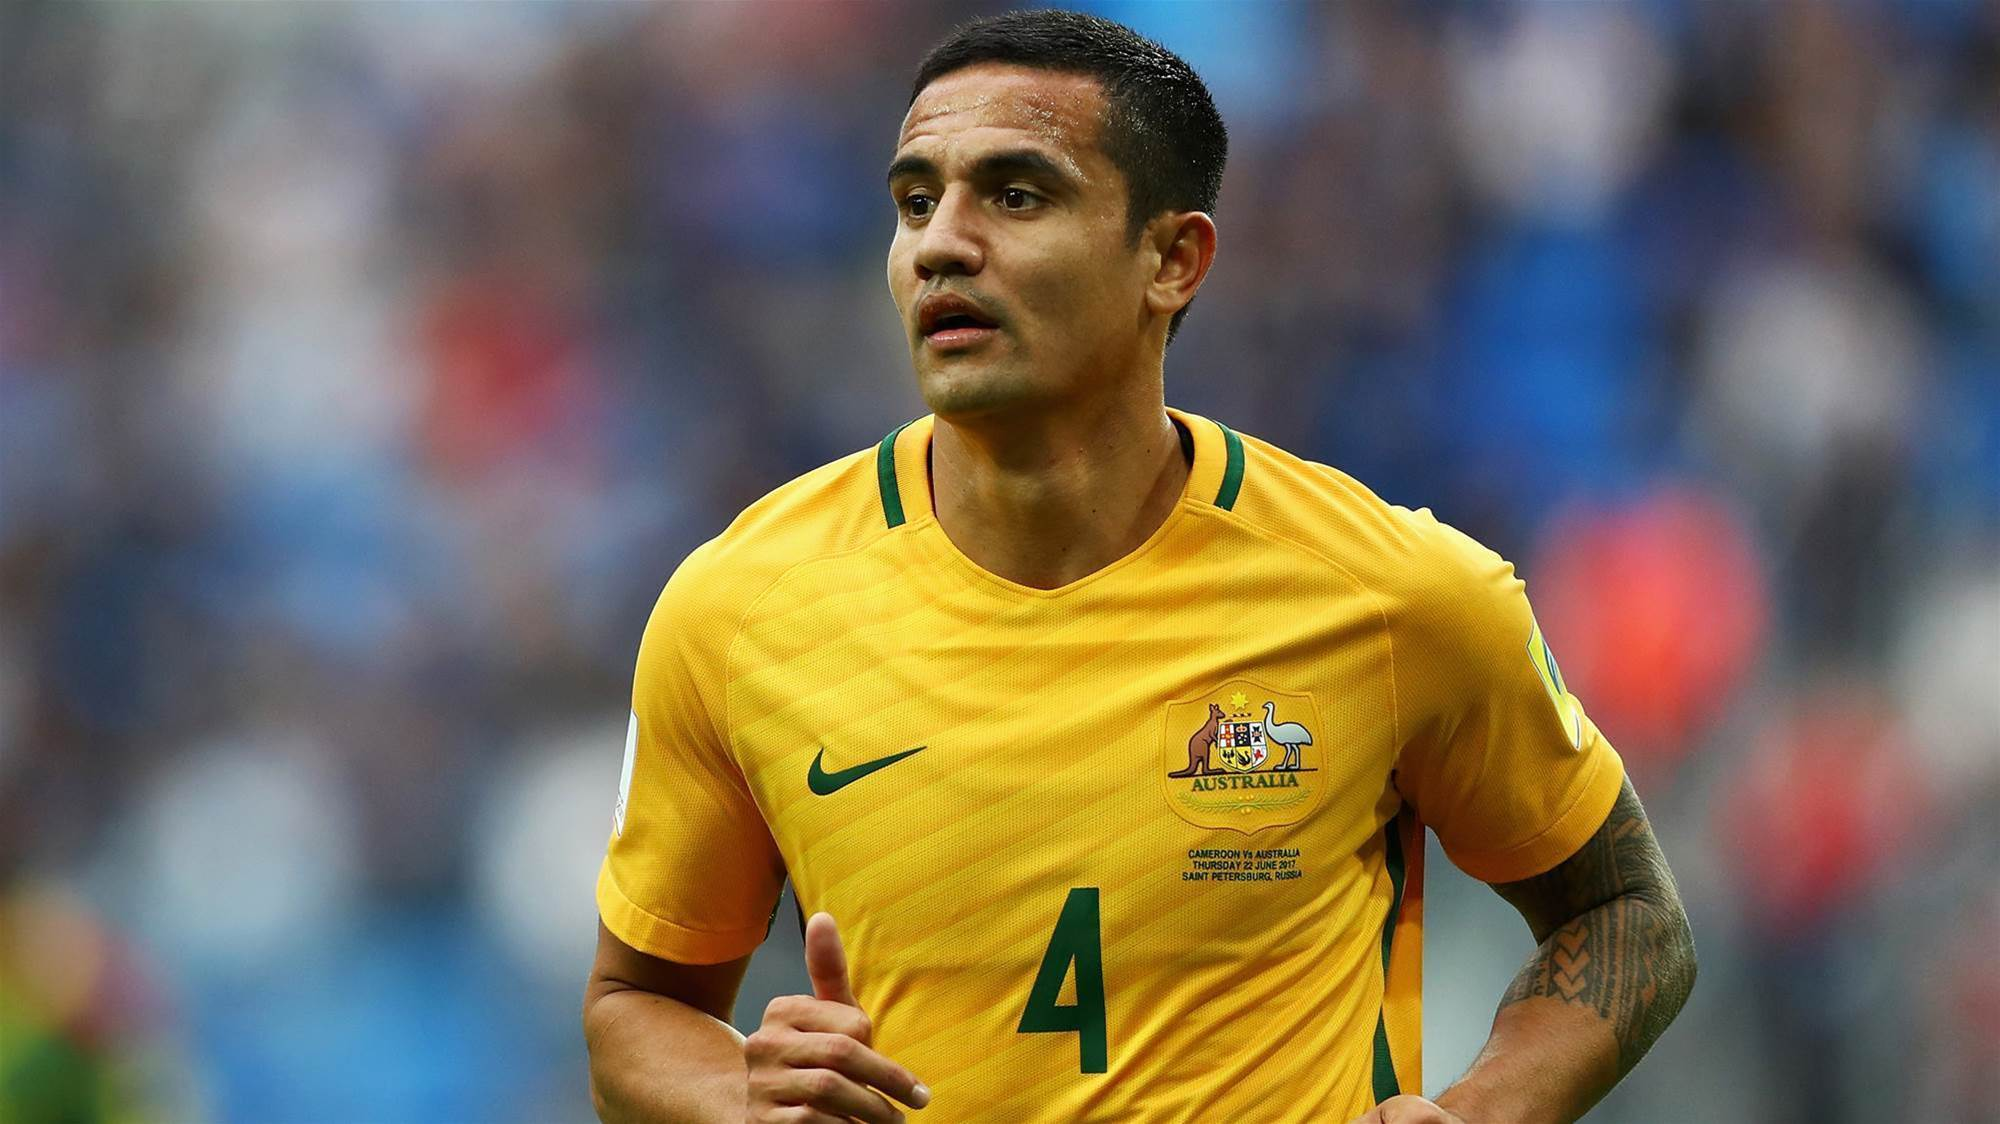 Cahill 'not emotional' on the brink of century milestone